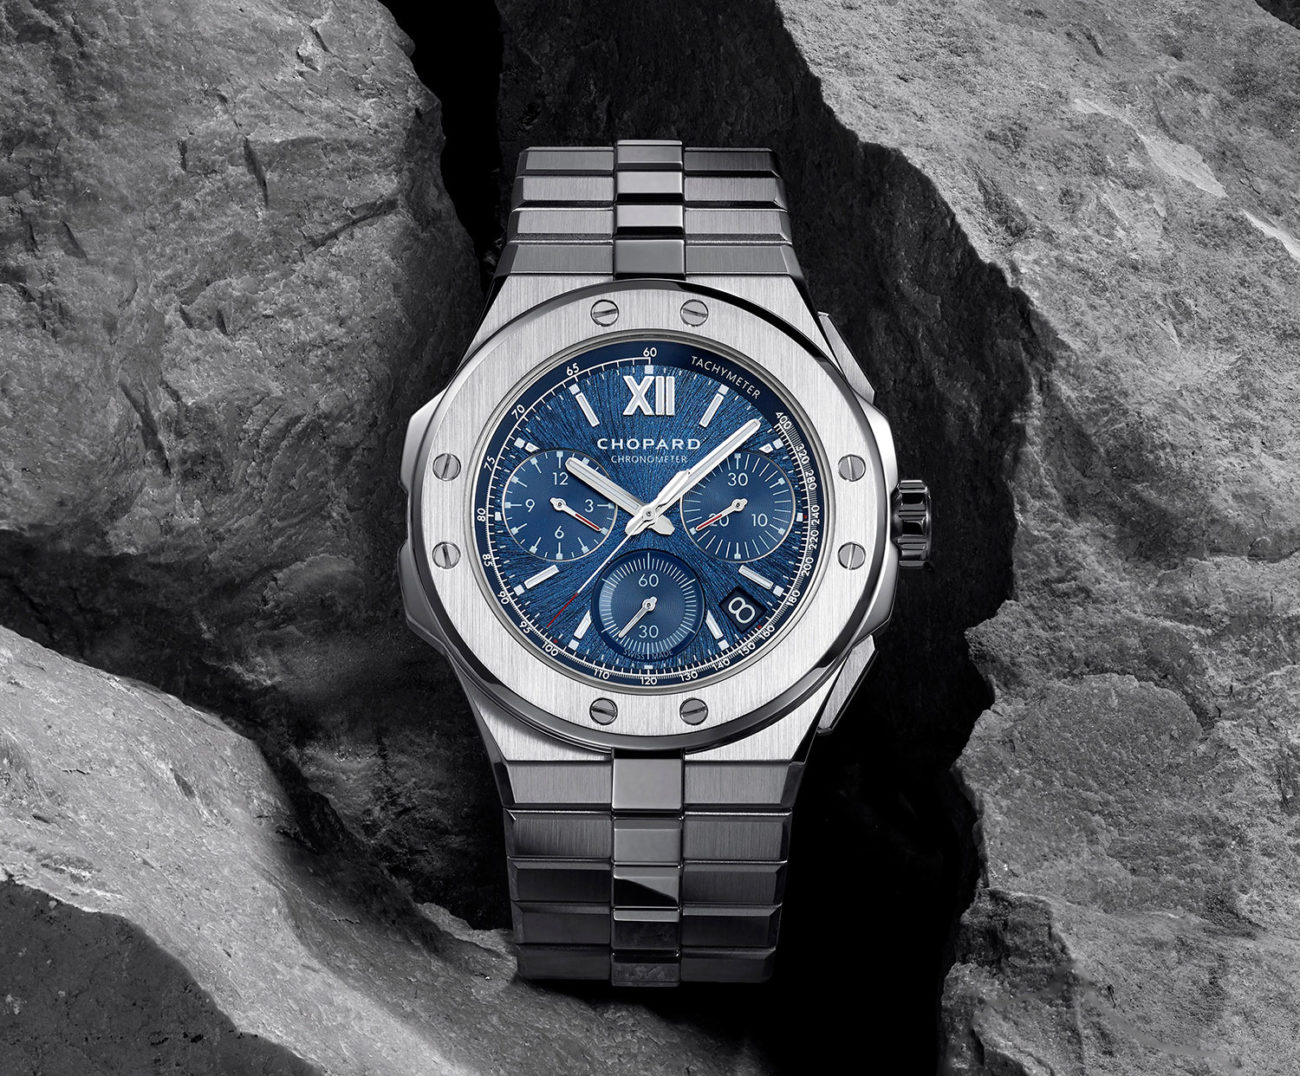 El Chopard Alpine Eagle XL Chrono azul